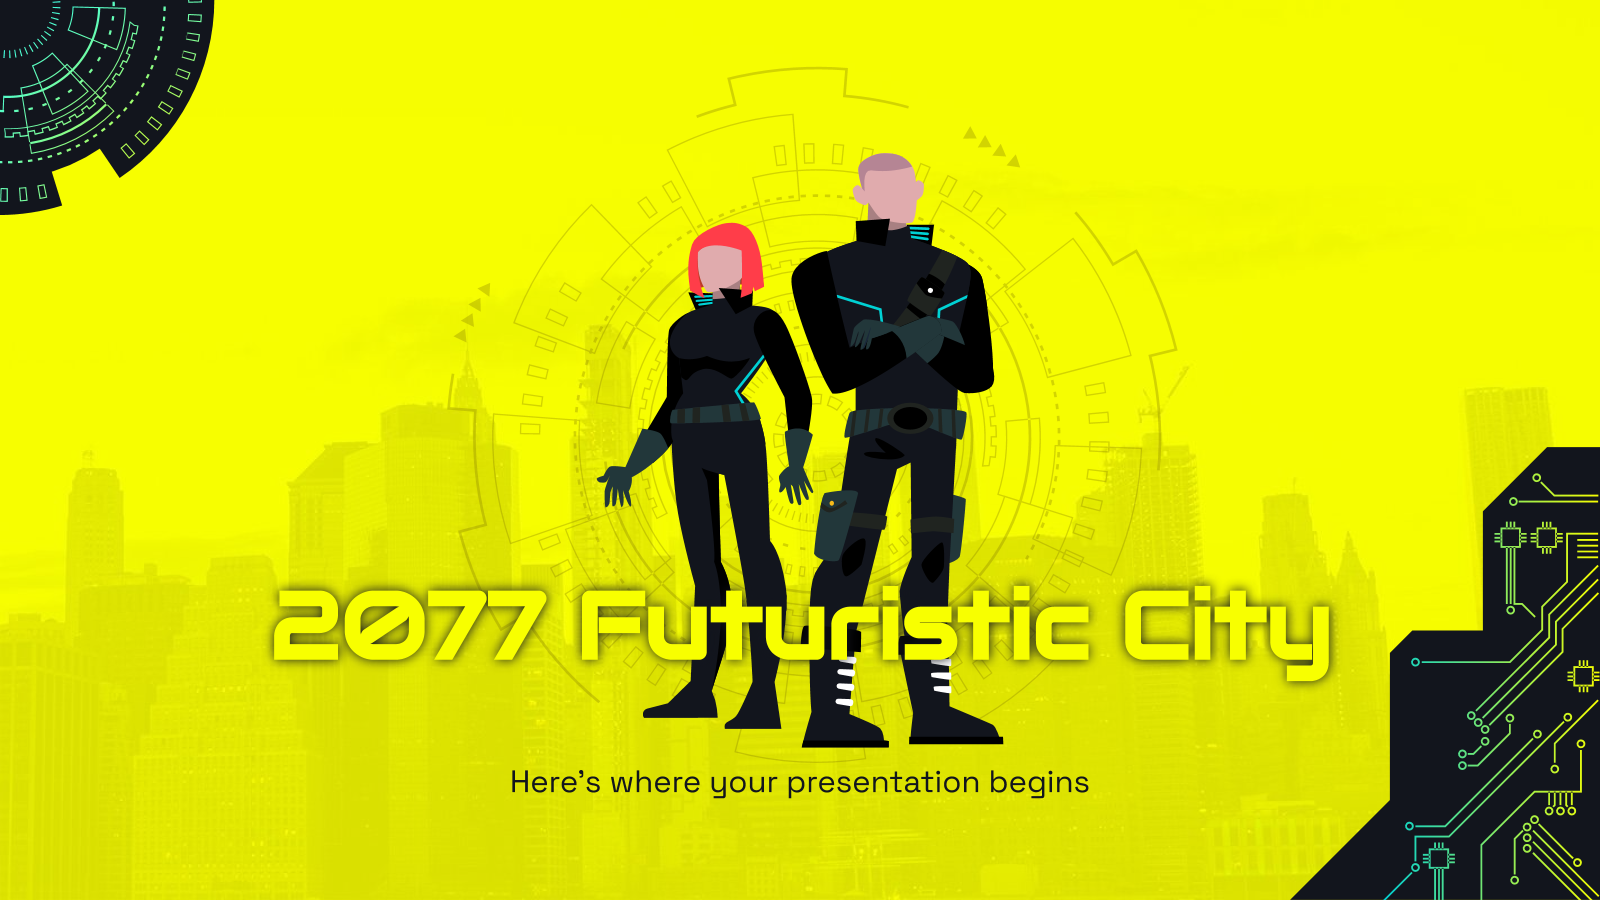 2077 Futuristic City presentation template